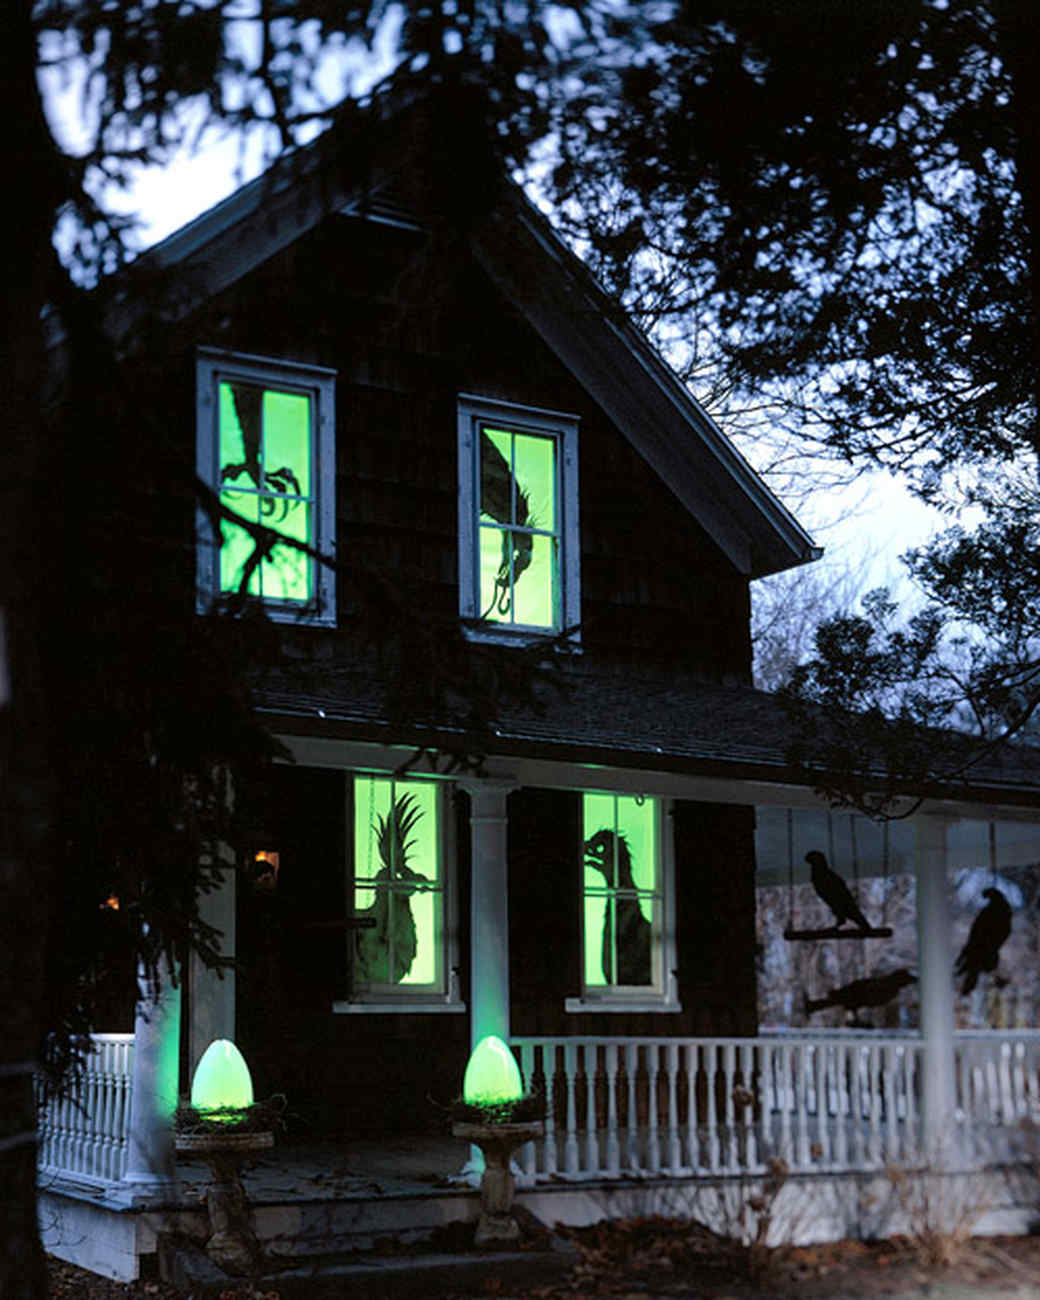 the and concept decorations cheap tips for easy incredible yard outdoor decor best ideas image diy with halloween tfast inspiration